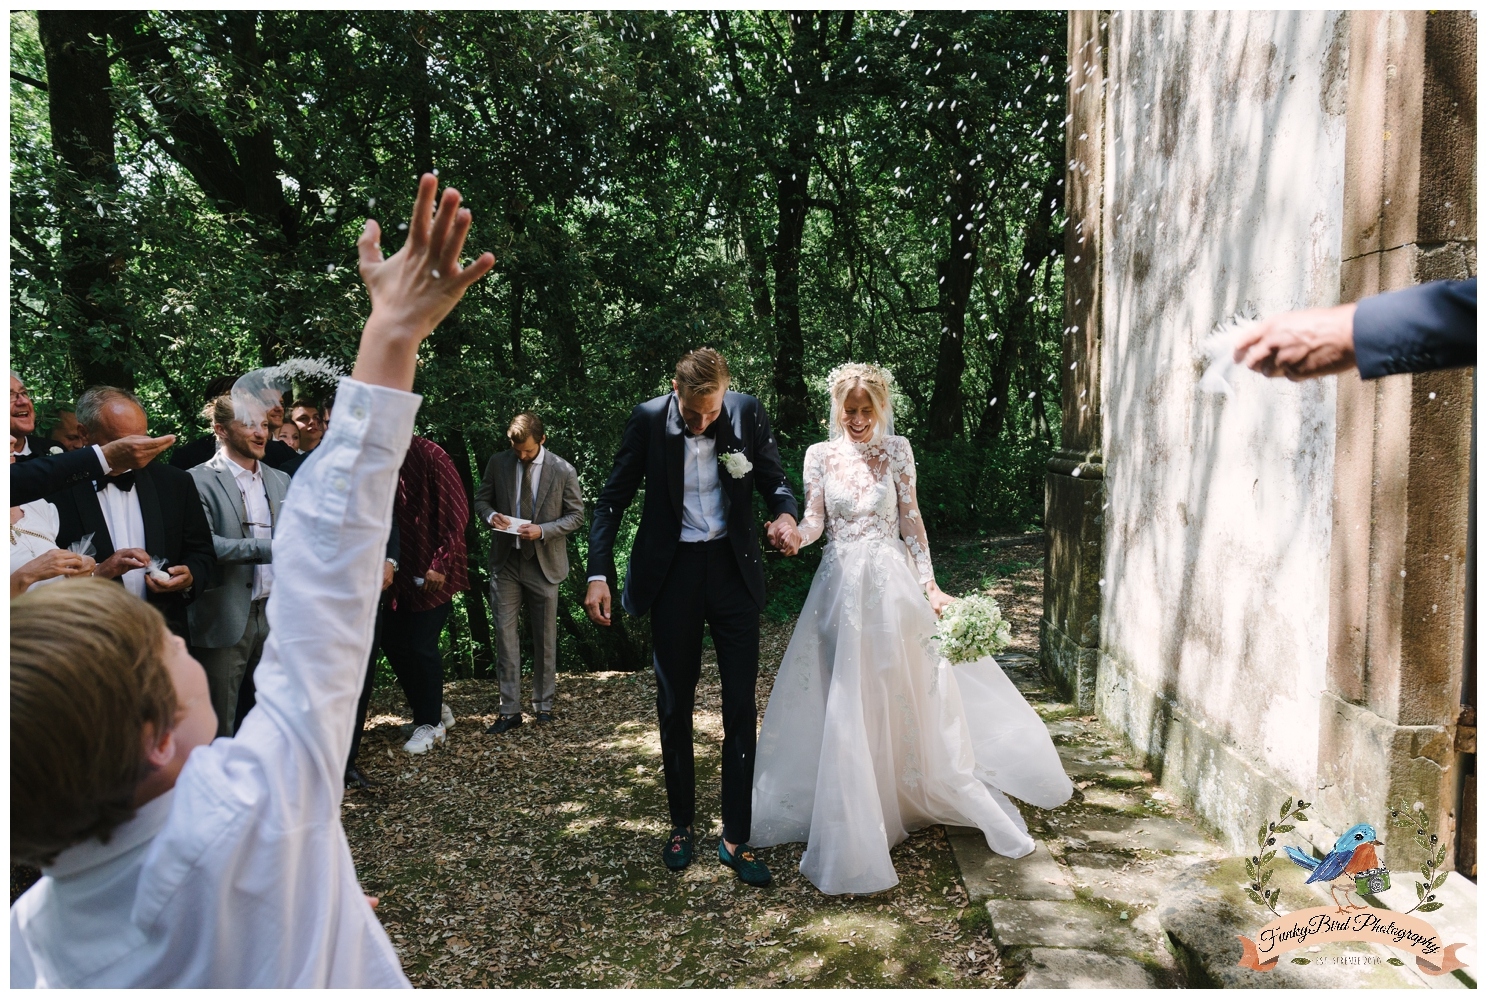 Wedding_Photographer_Tuscany_Bryllupsfotograf_0045.jpg